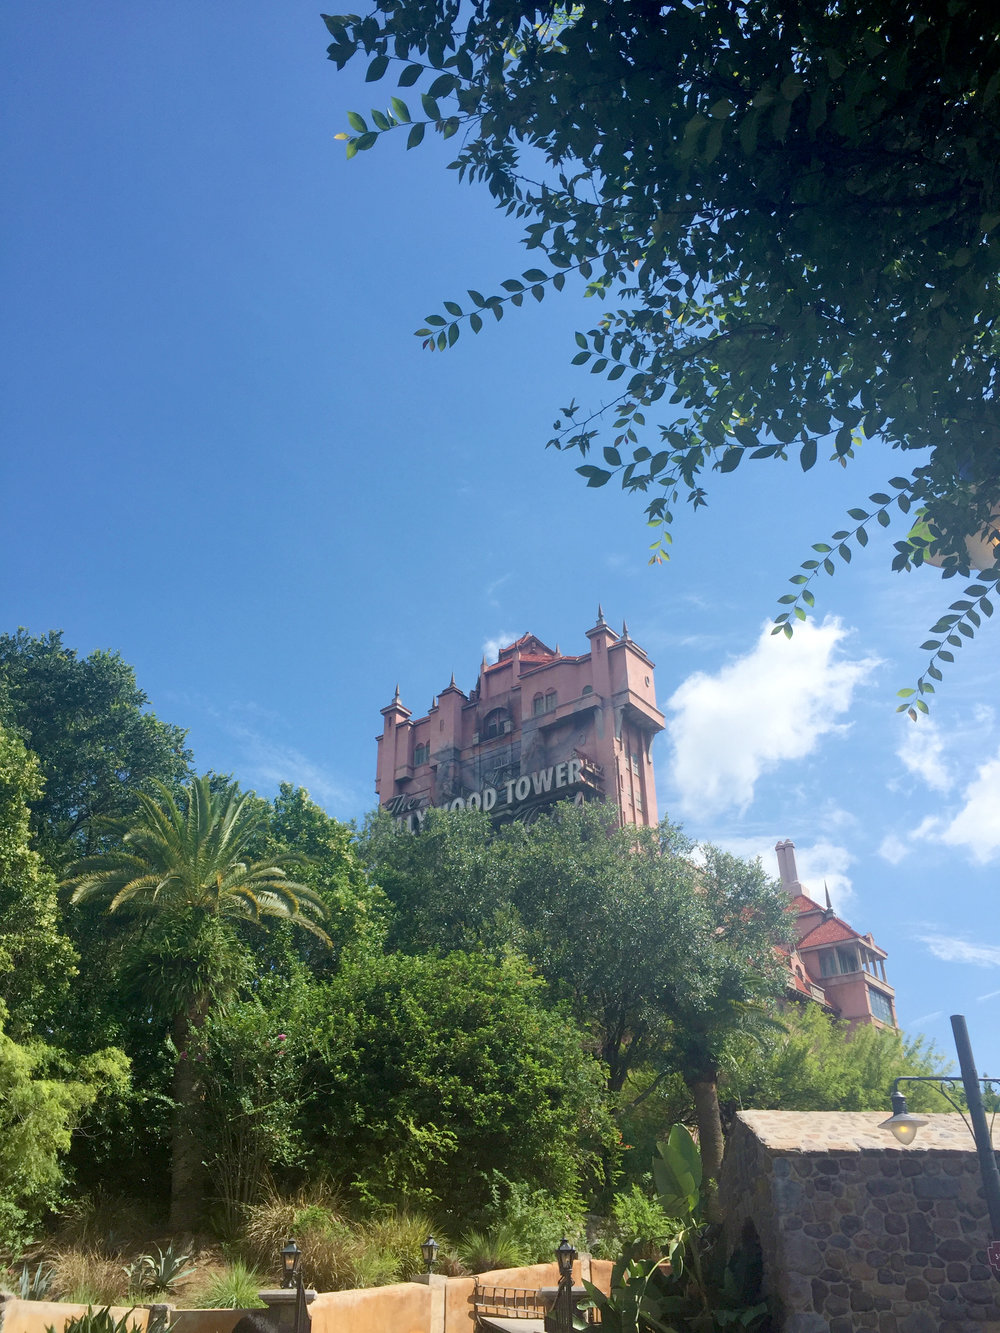 Tower of Terror isn't one of my favorites (I get really easily scared!) but if you like it, it should probably be one of your Tier Two Fastpass picks.